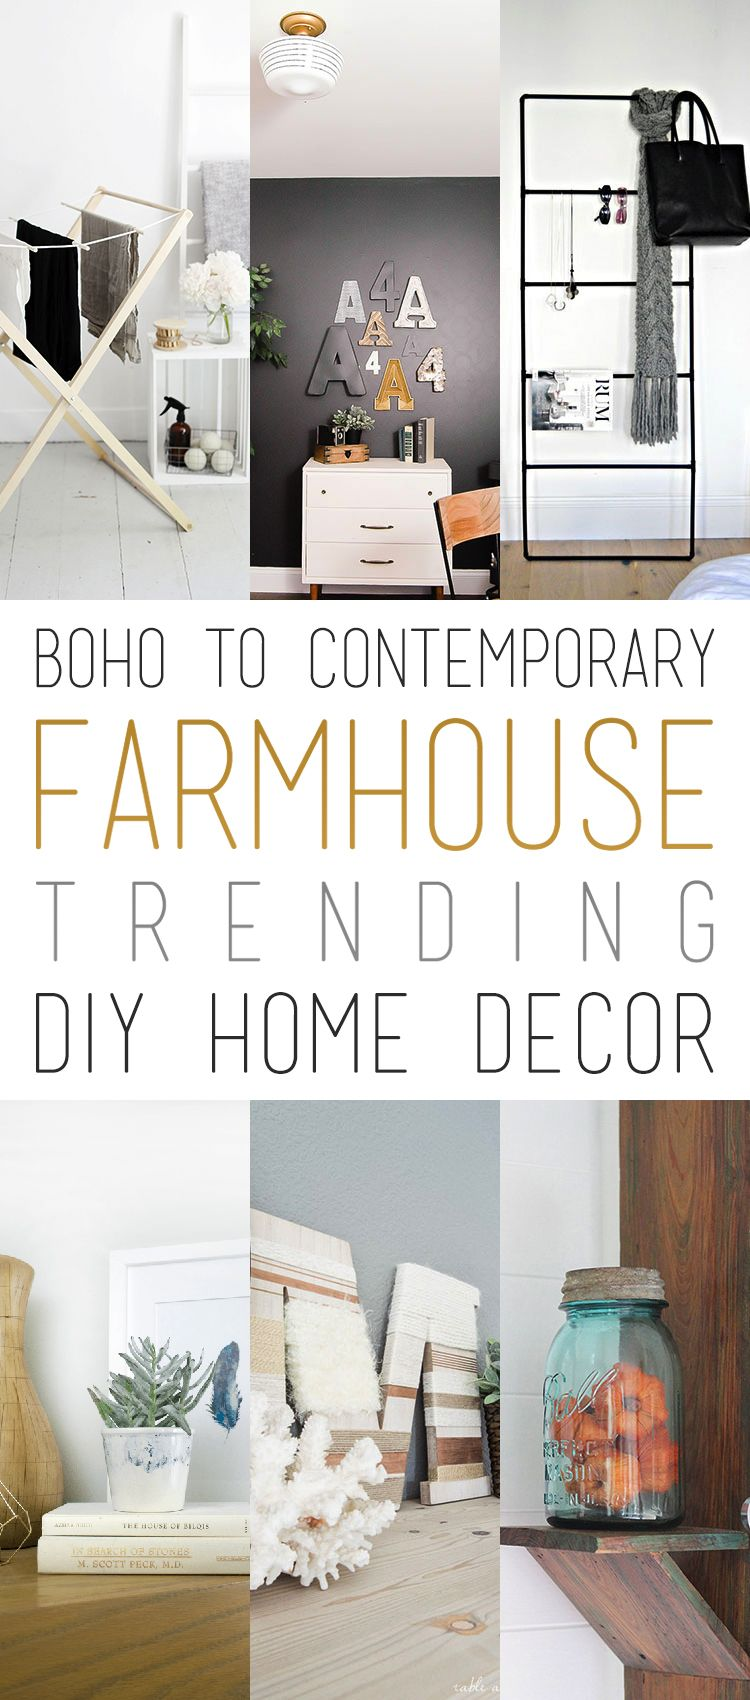 From BOHO To Contemporary Farmhouse...check Out These Trending DIY Home  Decor Projects...something For Every Home Decor Style. ENJOY!